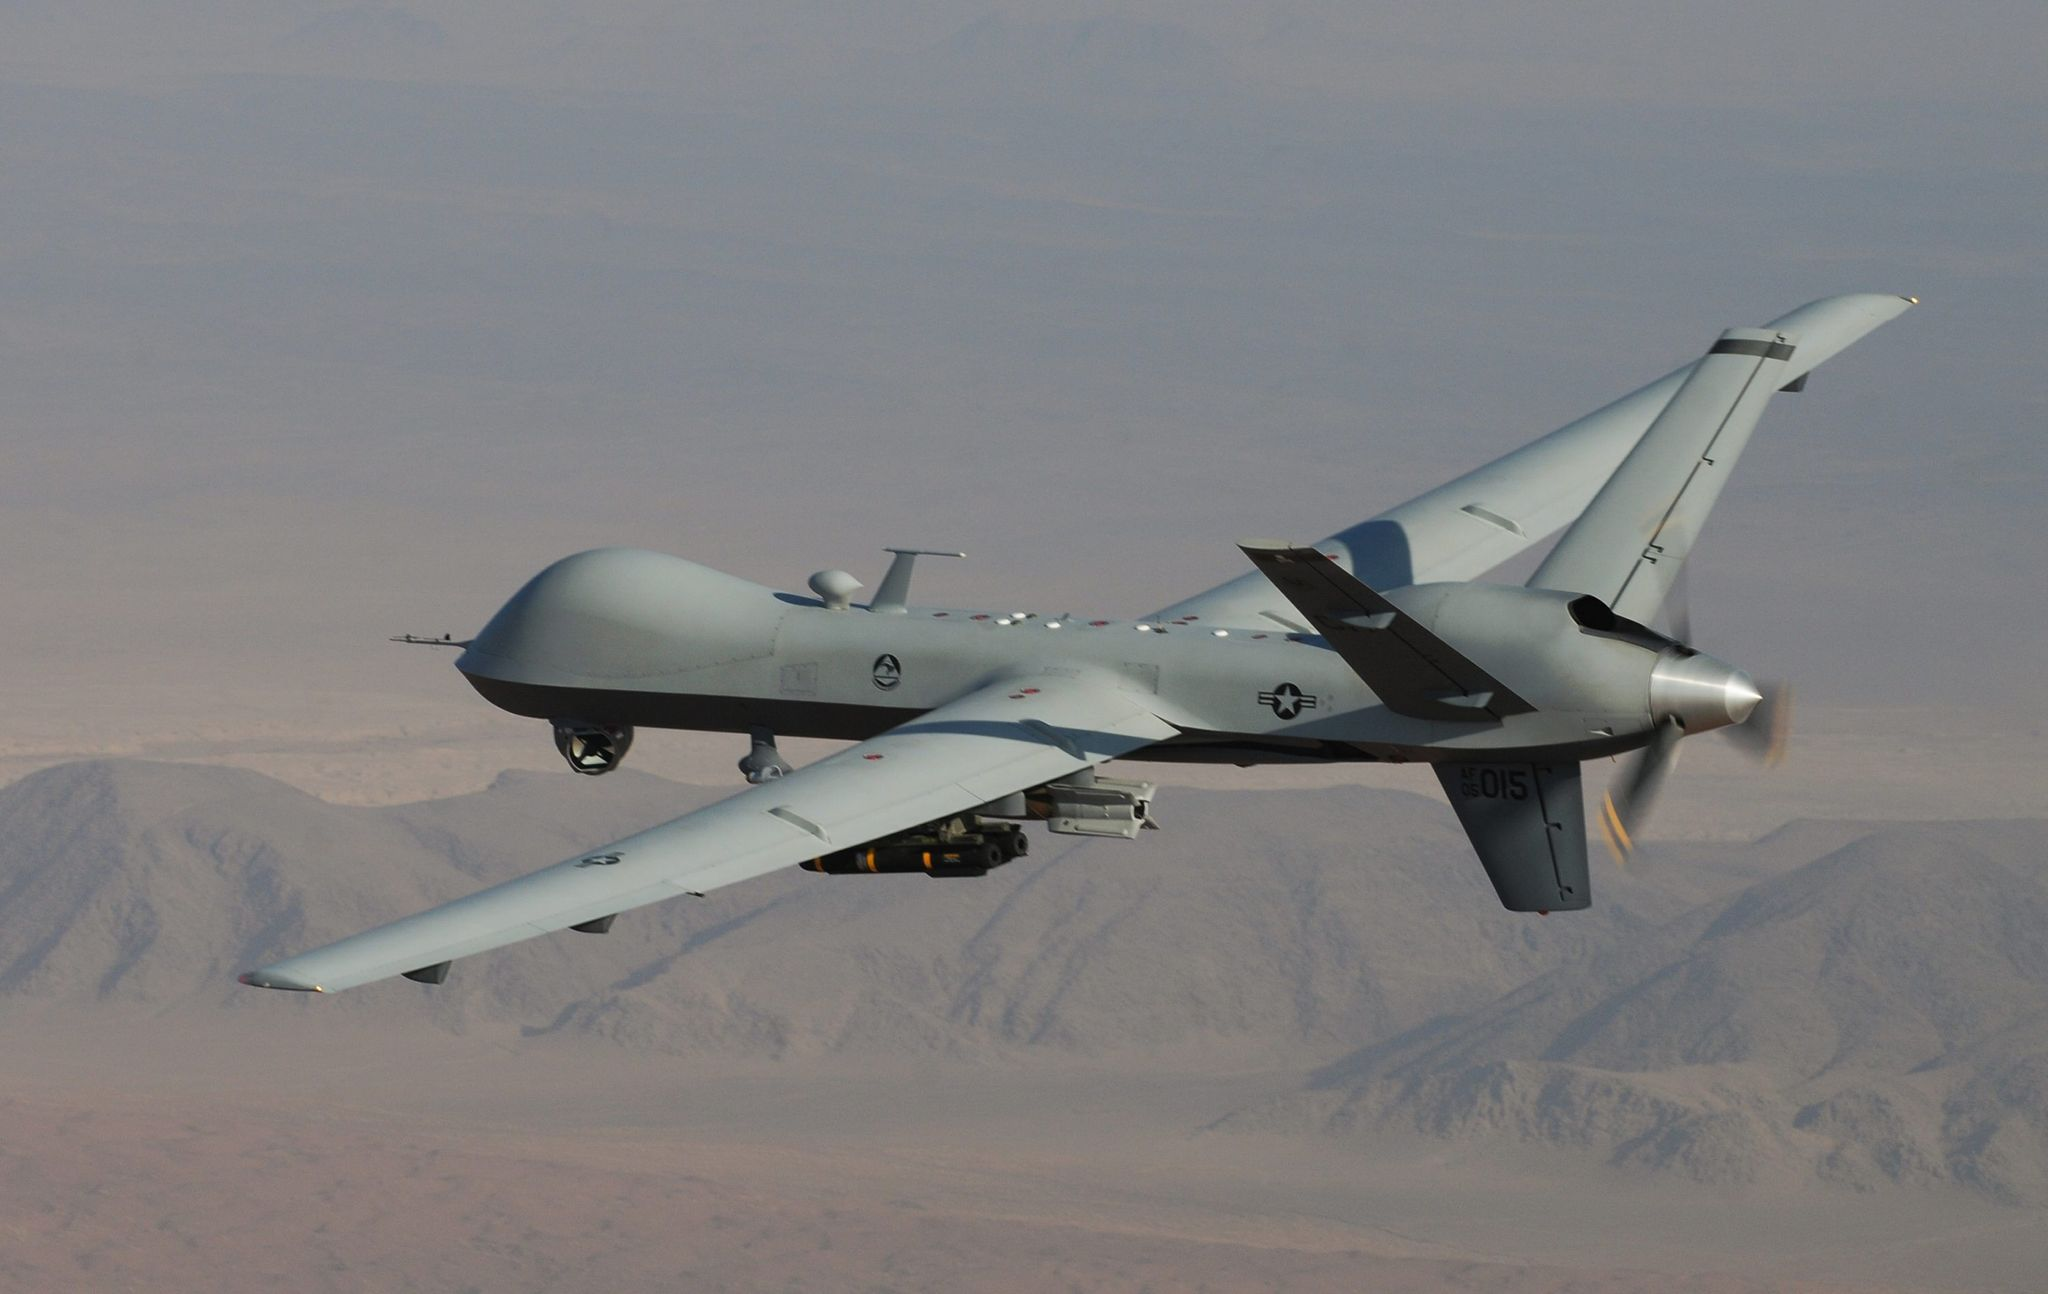 Fuel-filled wings, ability to swarm: Pentagon offers glimpse at future of drone fleet